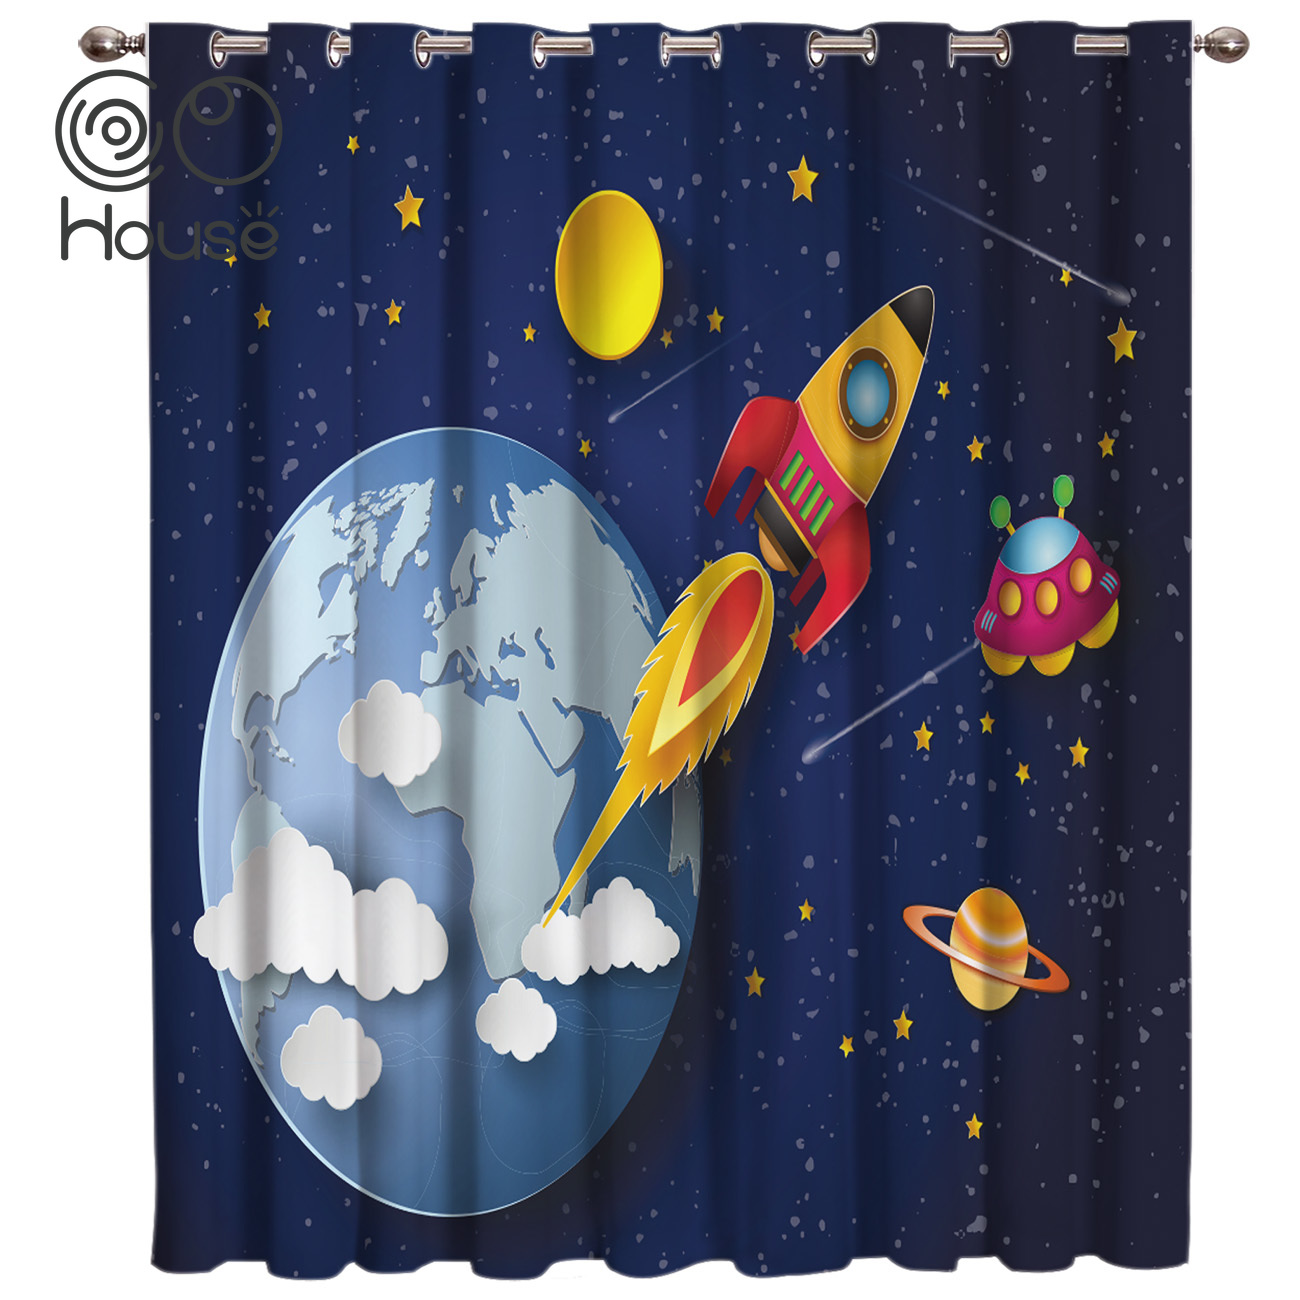 CoCoHouse Galaxy Cartoon Universe Window Curtains Dark Curtain Rod Bedroom Floral Indoor Decor Kids Curtain Panels With Grommets